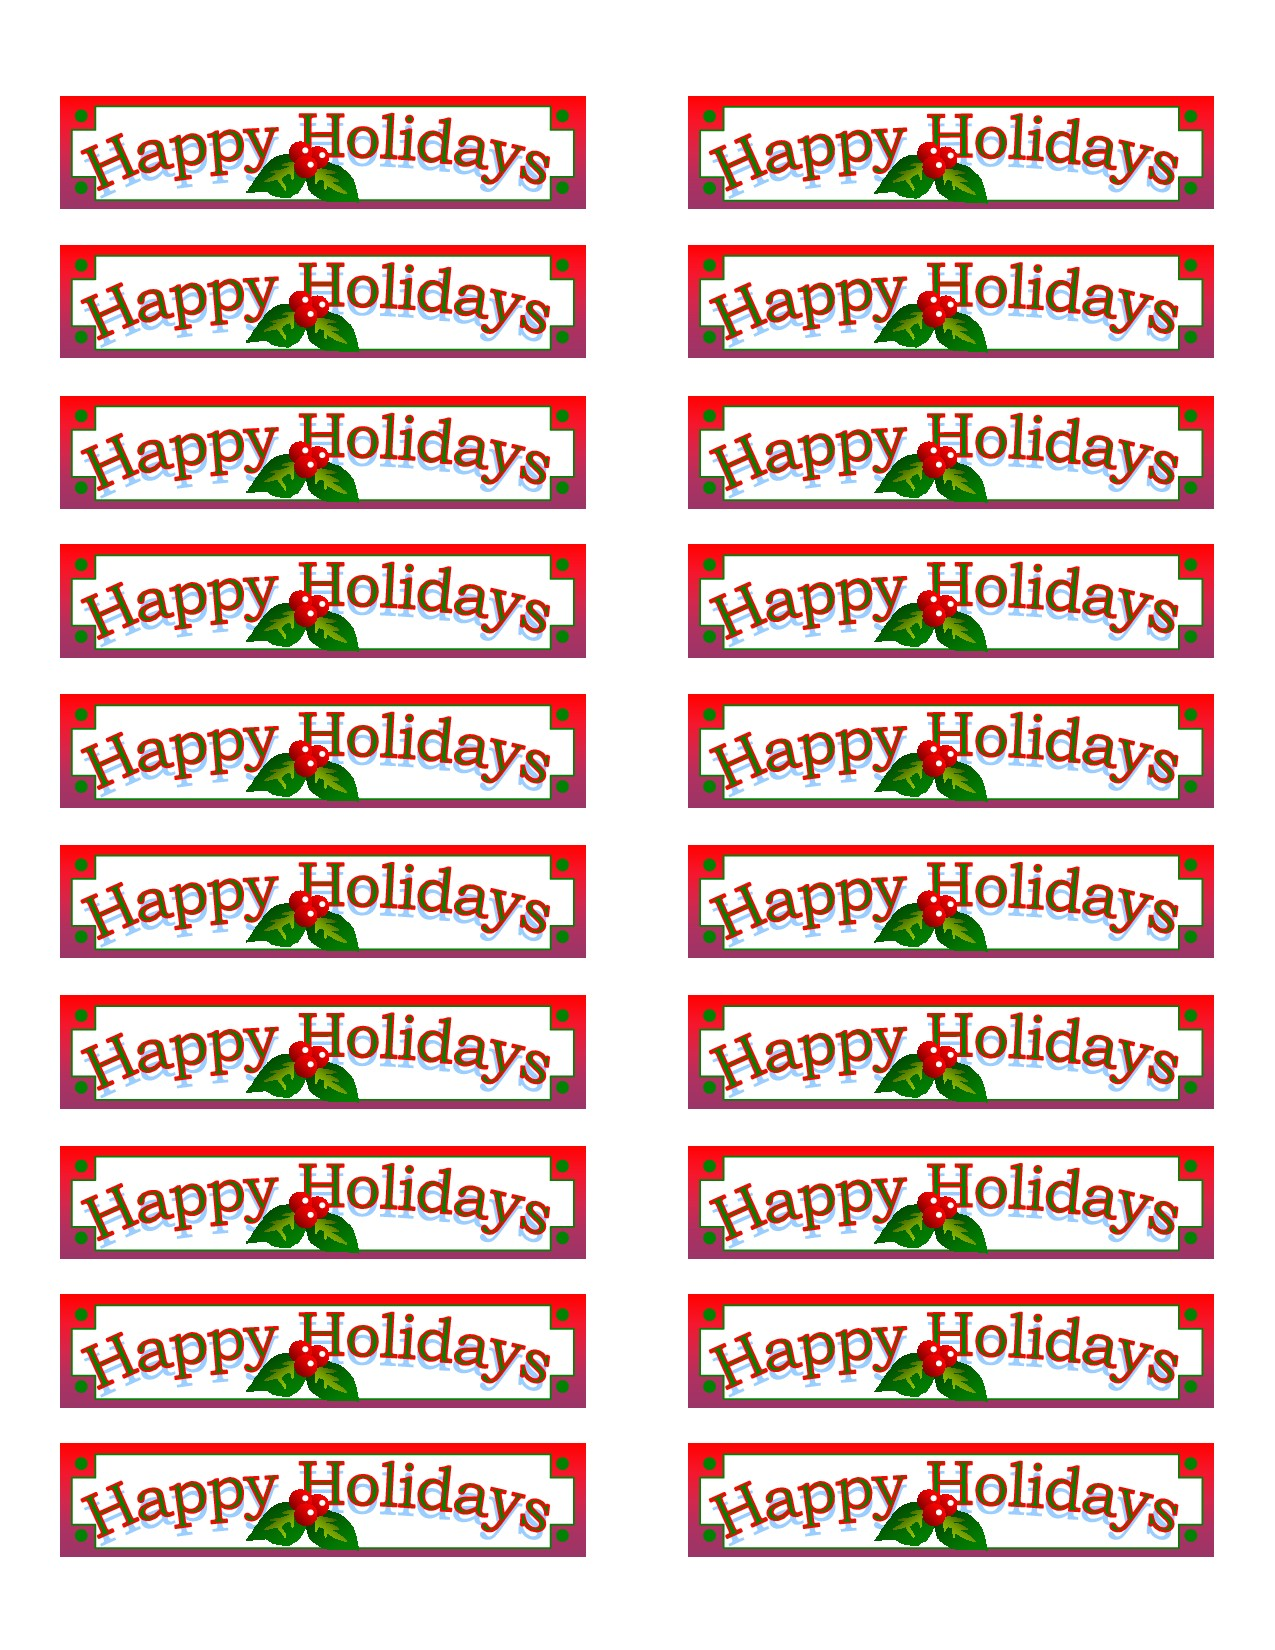 Christmas Return Address Labels Template Avery 5160 Search Results for Avery Template 5160 Christmas Labels